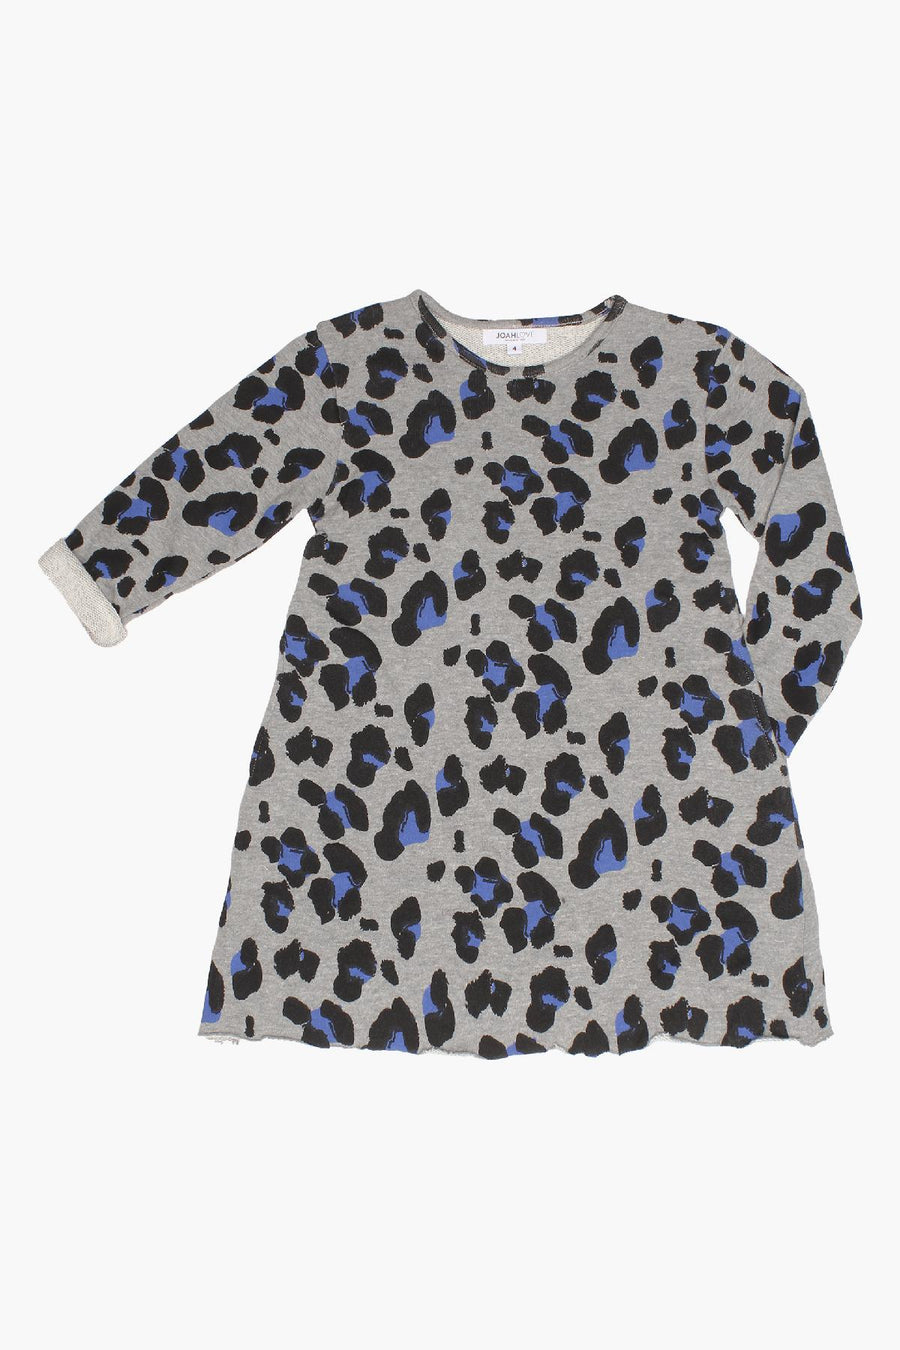 Joah Love Becca Cheetah Dress